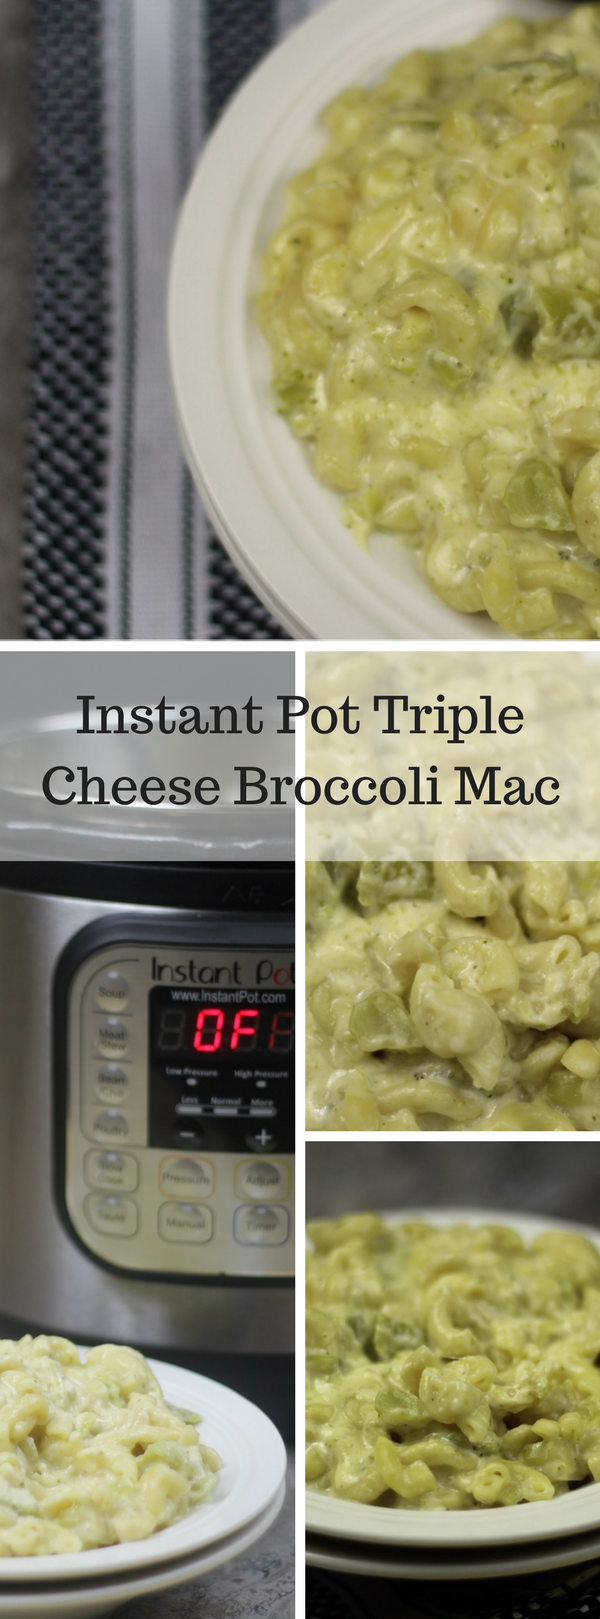 Instant Pot Triple Cheese Broccoli Mac